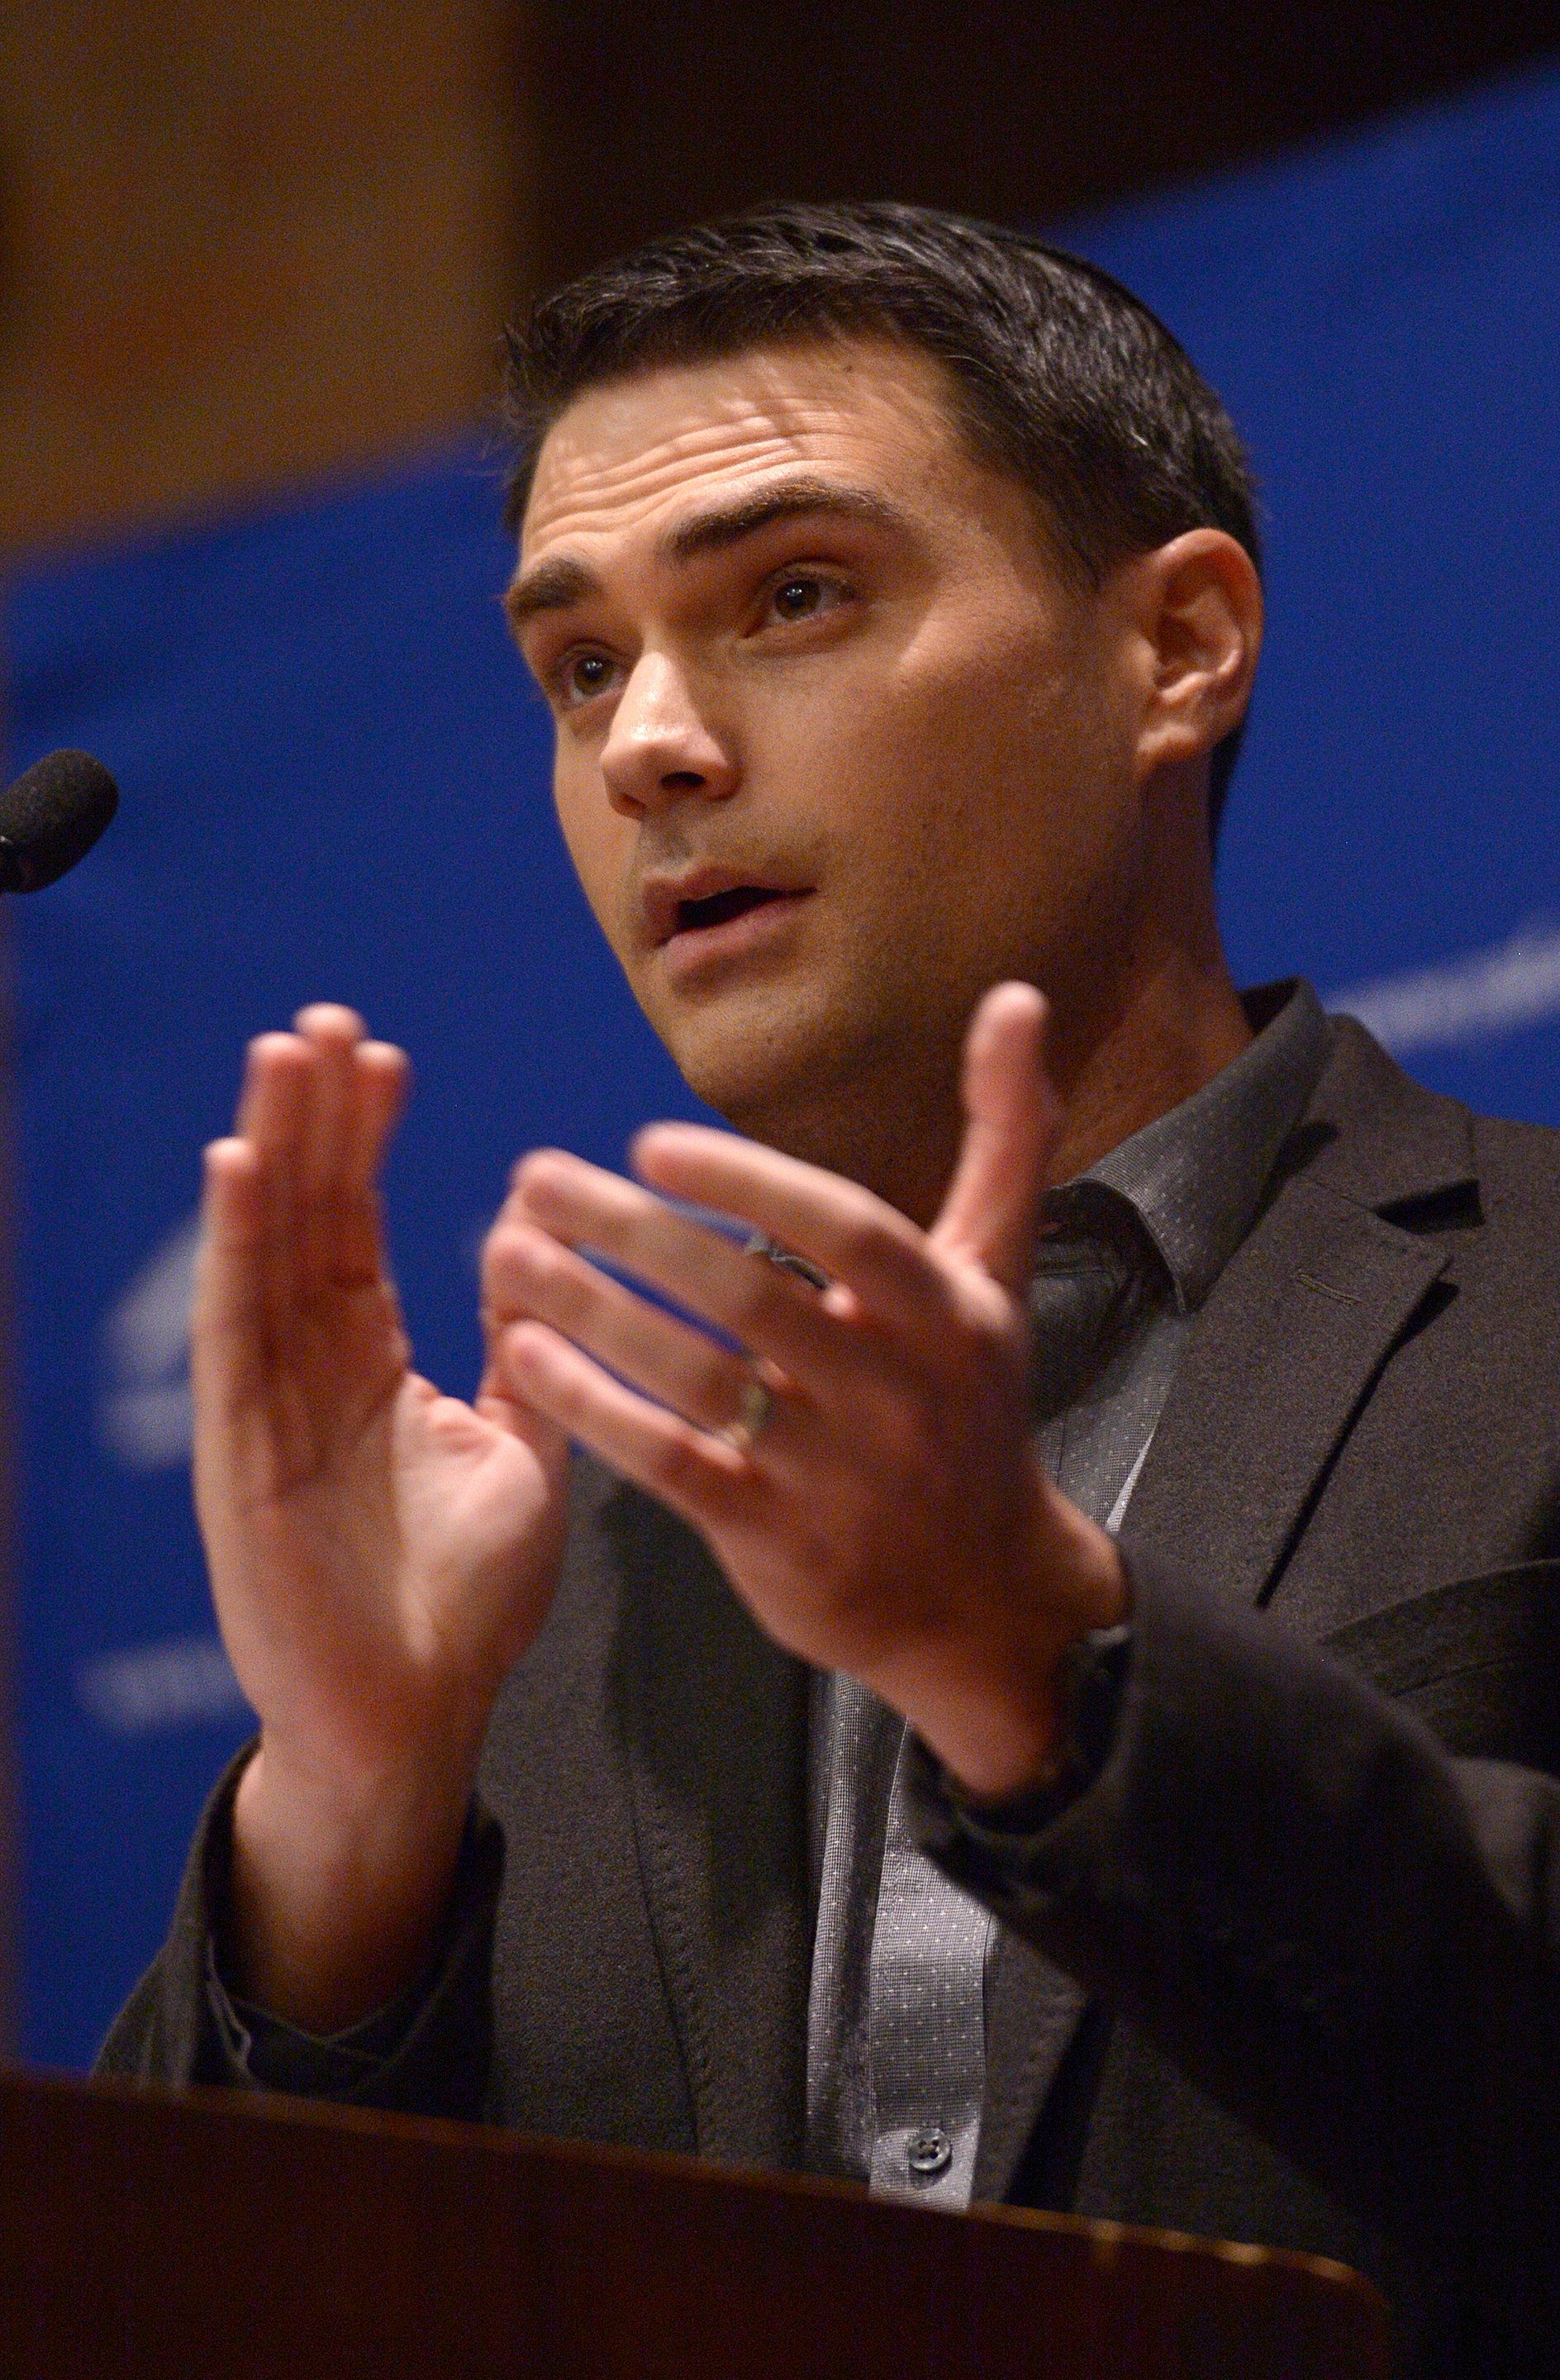 Ben Shapiro Tells Pro-Life Rally He Wouldn't Kill Baby Hitler